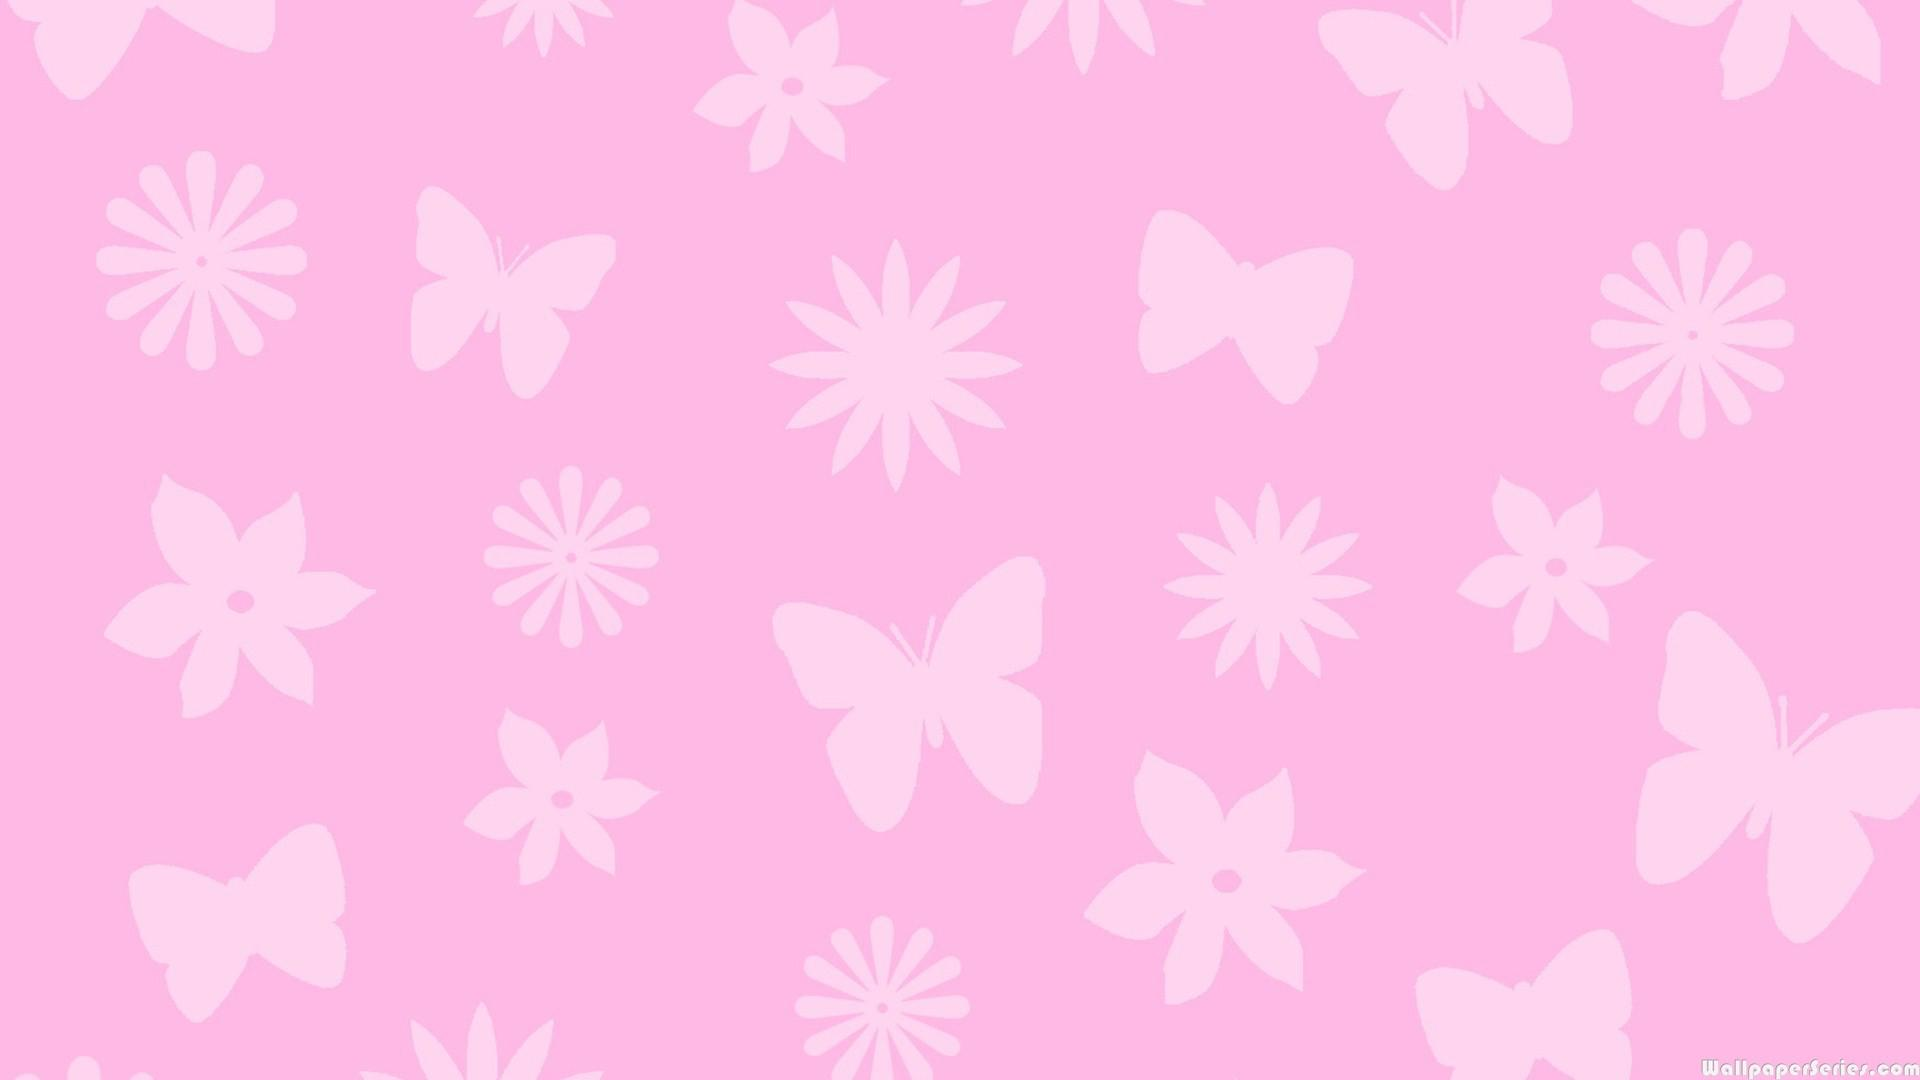 35 high definition pink wallpapersbackgrounds for free download pink wallpaper as background 2 voltagebd Choice Image